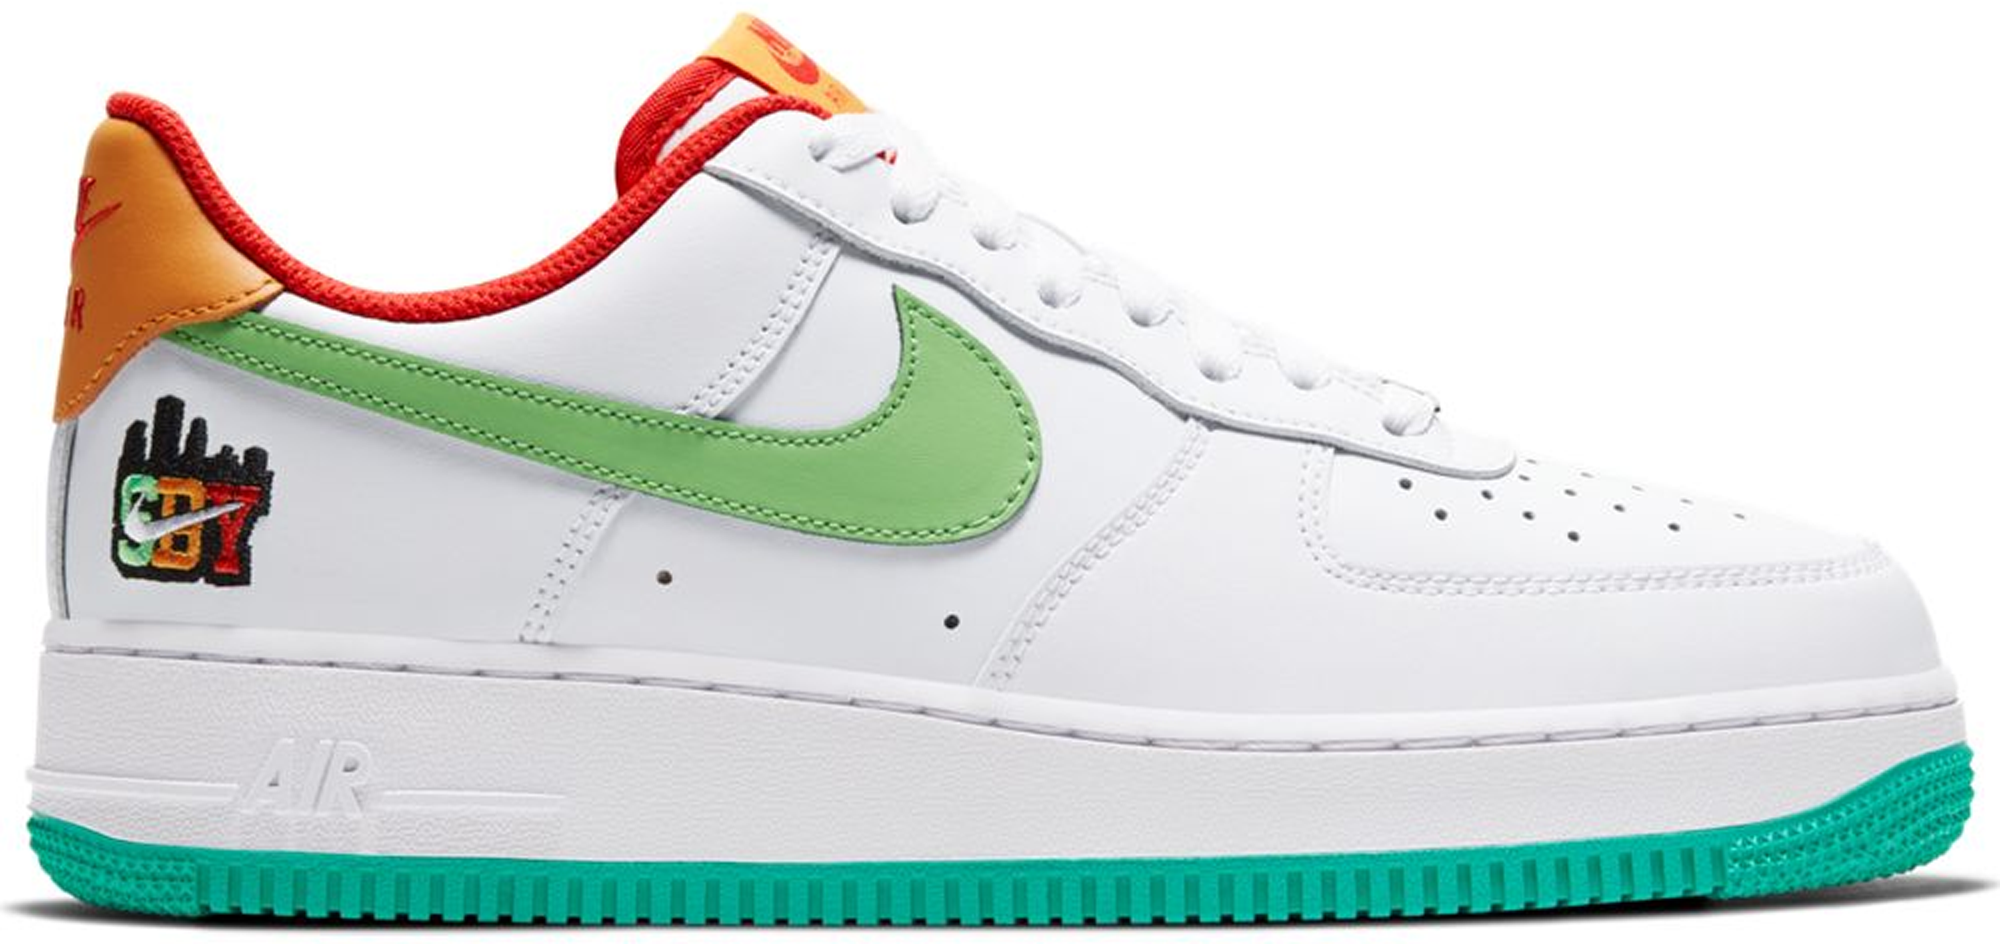 Pre-owned Air Force 1 Low Shibuya White In White/green-orange-teal